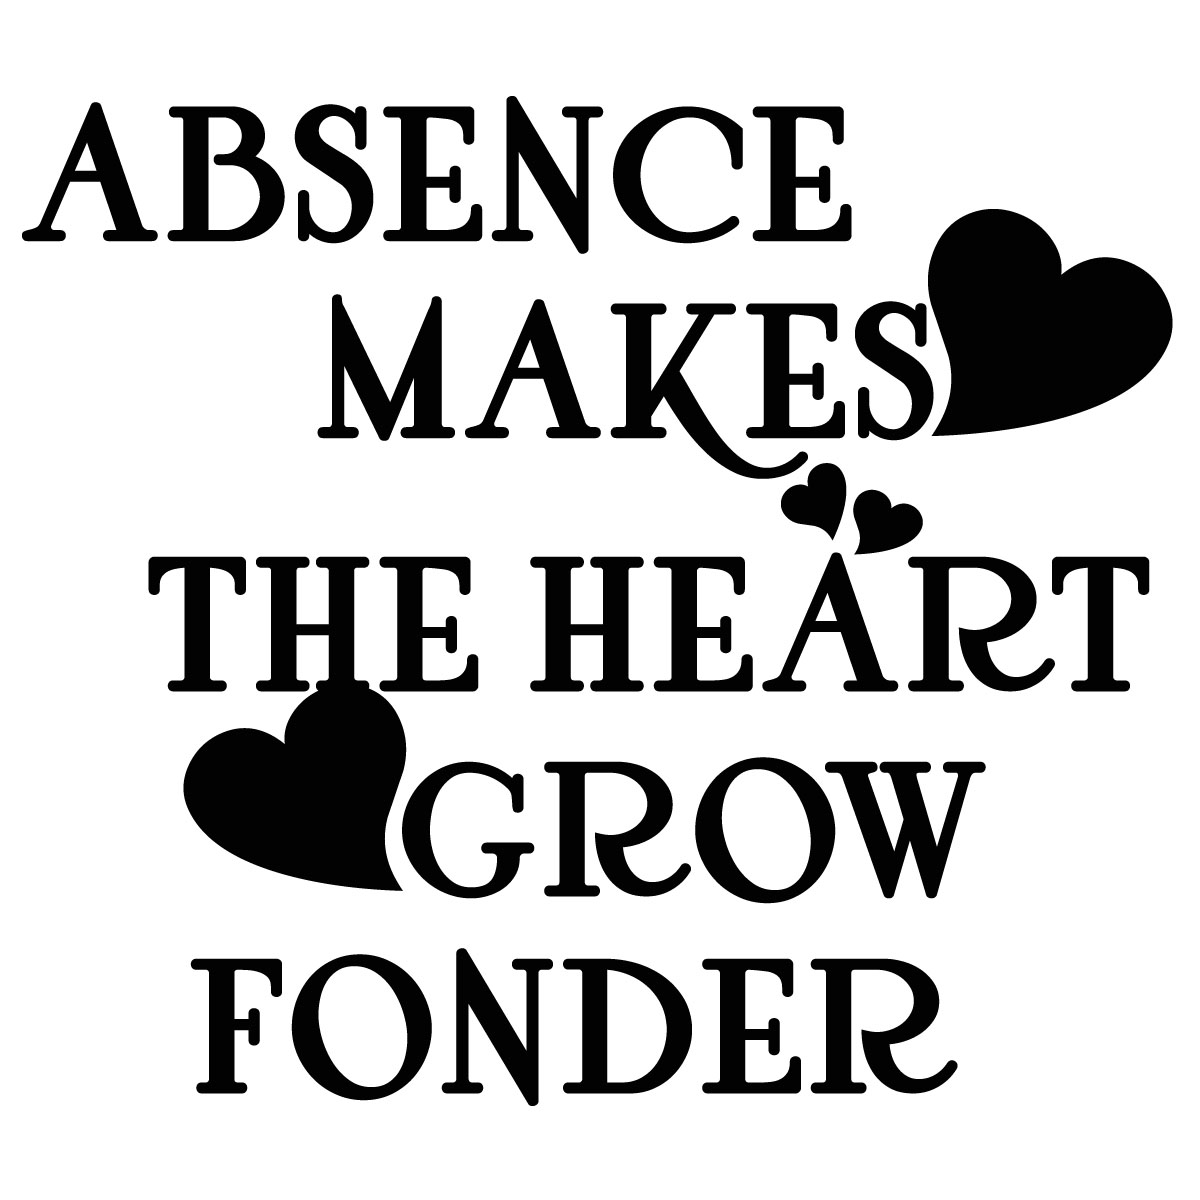 absence make the heart grow fonder essay Short stories absence makes the heart grow fonder as i was scrolling down the internet, i saw the phrase absence makes the heart grow fonder.